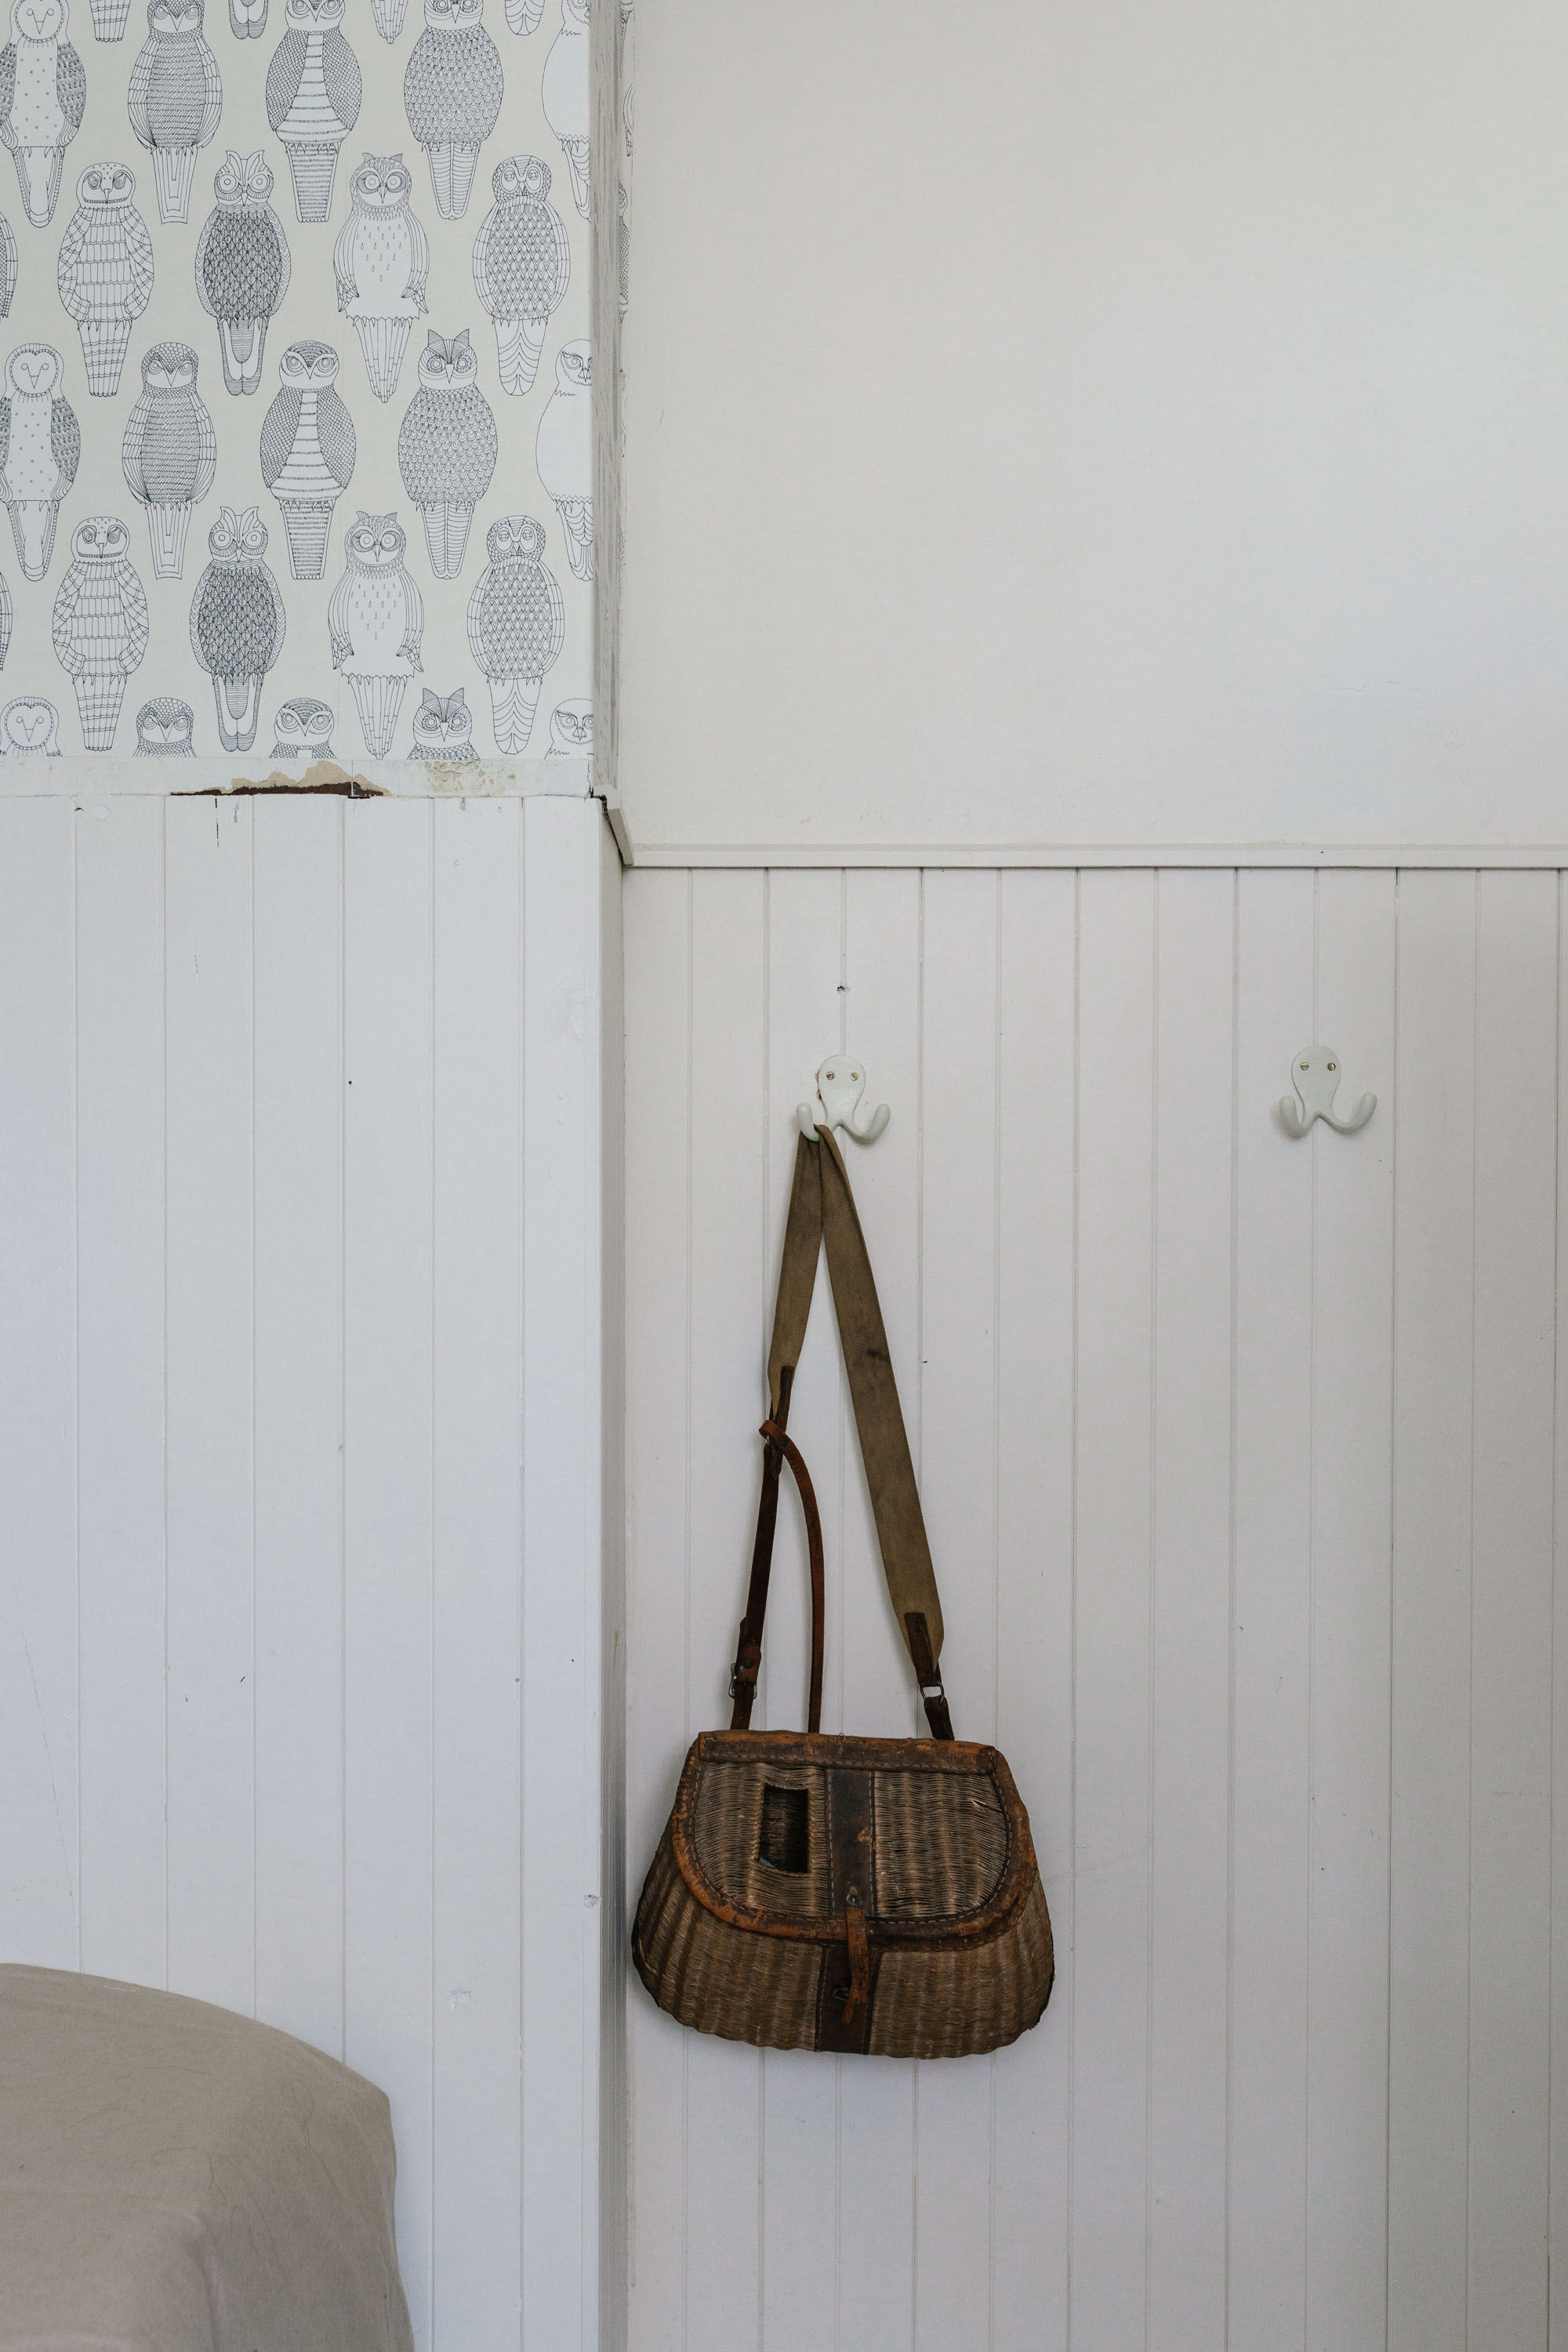 Marnie Hawson, Melbourne interior photographer for Factoria VII in Dawesley, South Australia for Country Style magazine